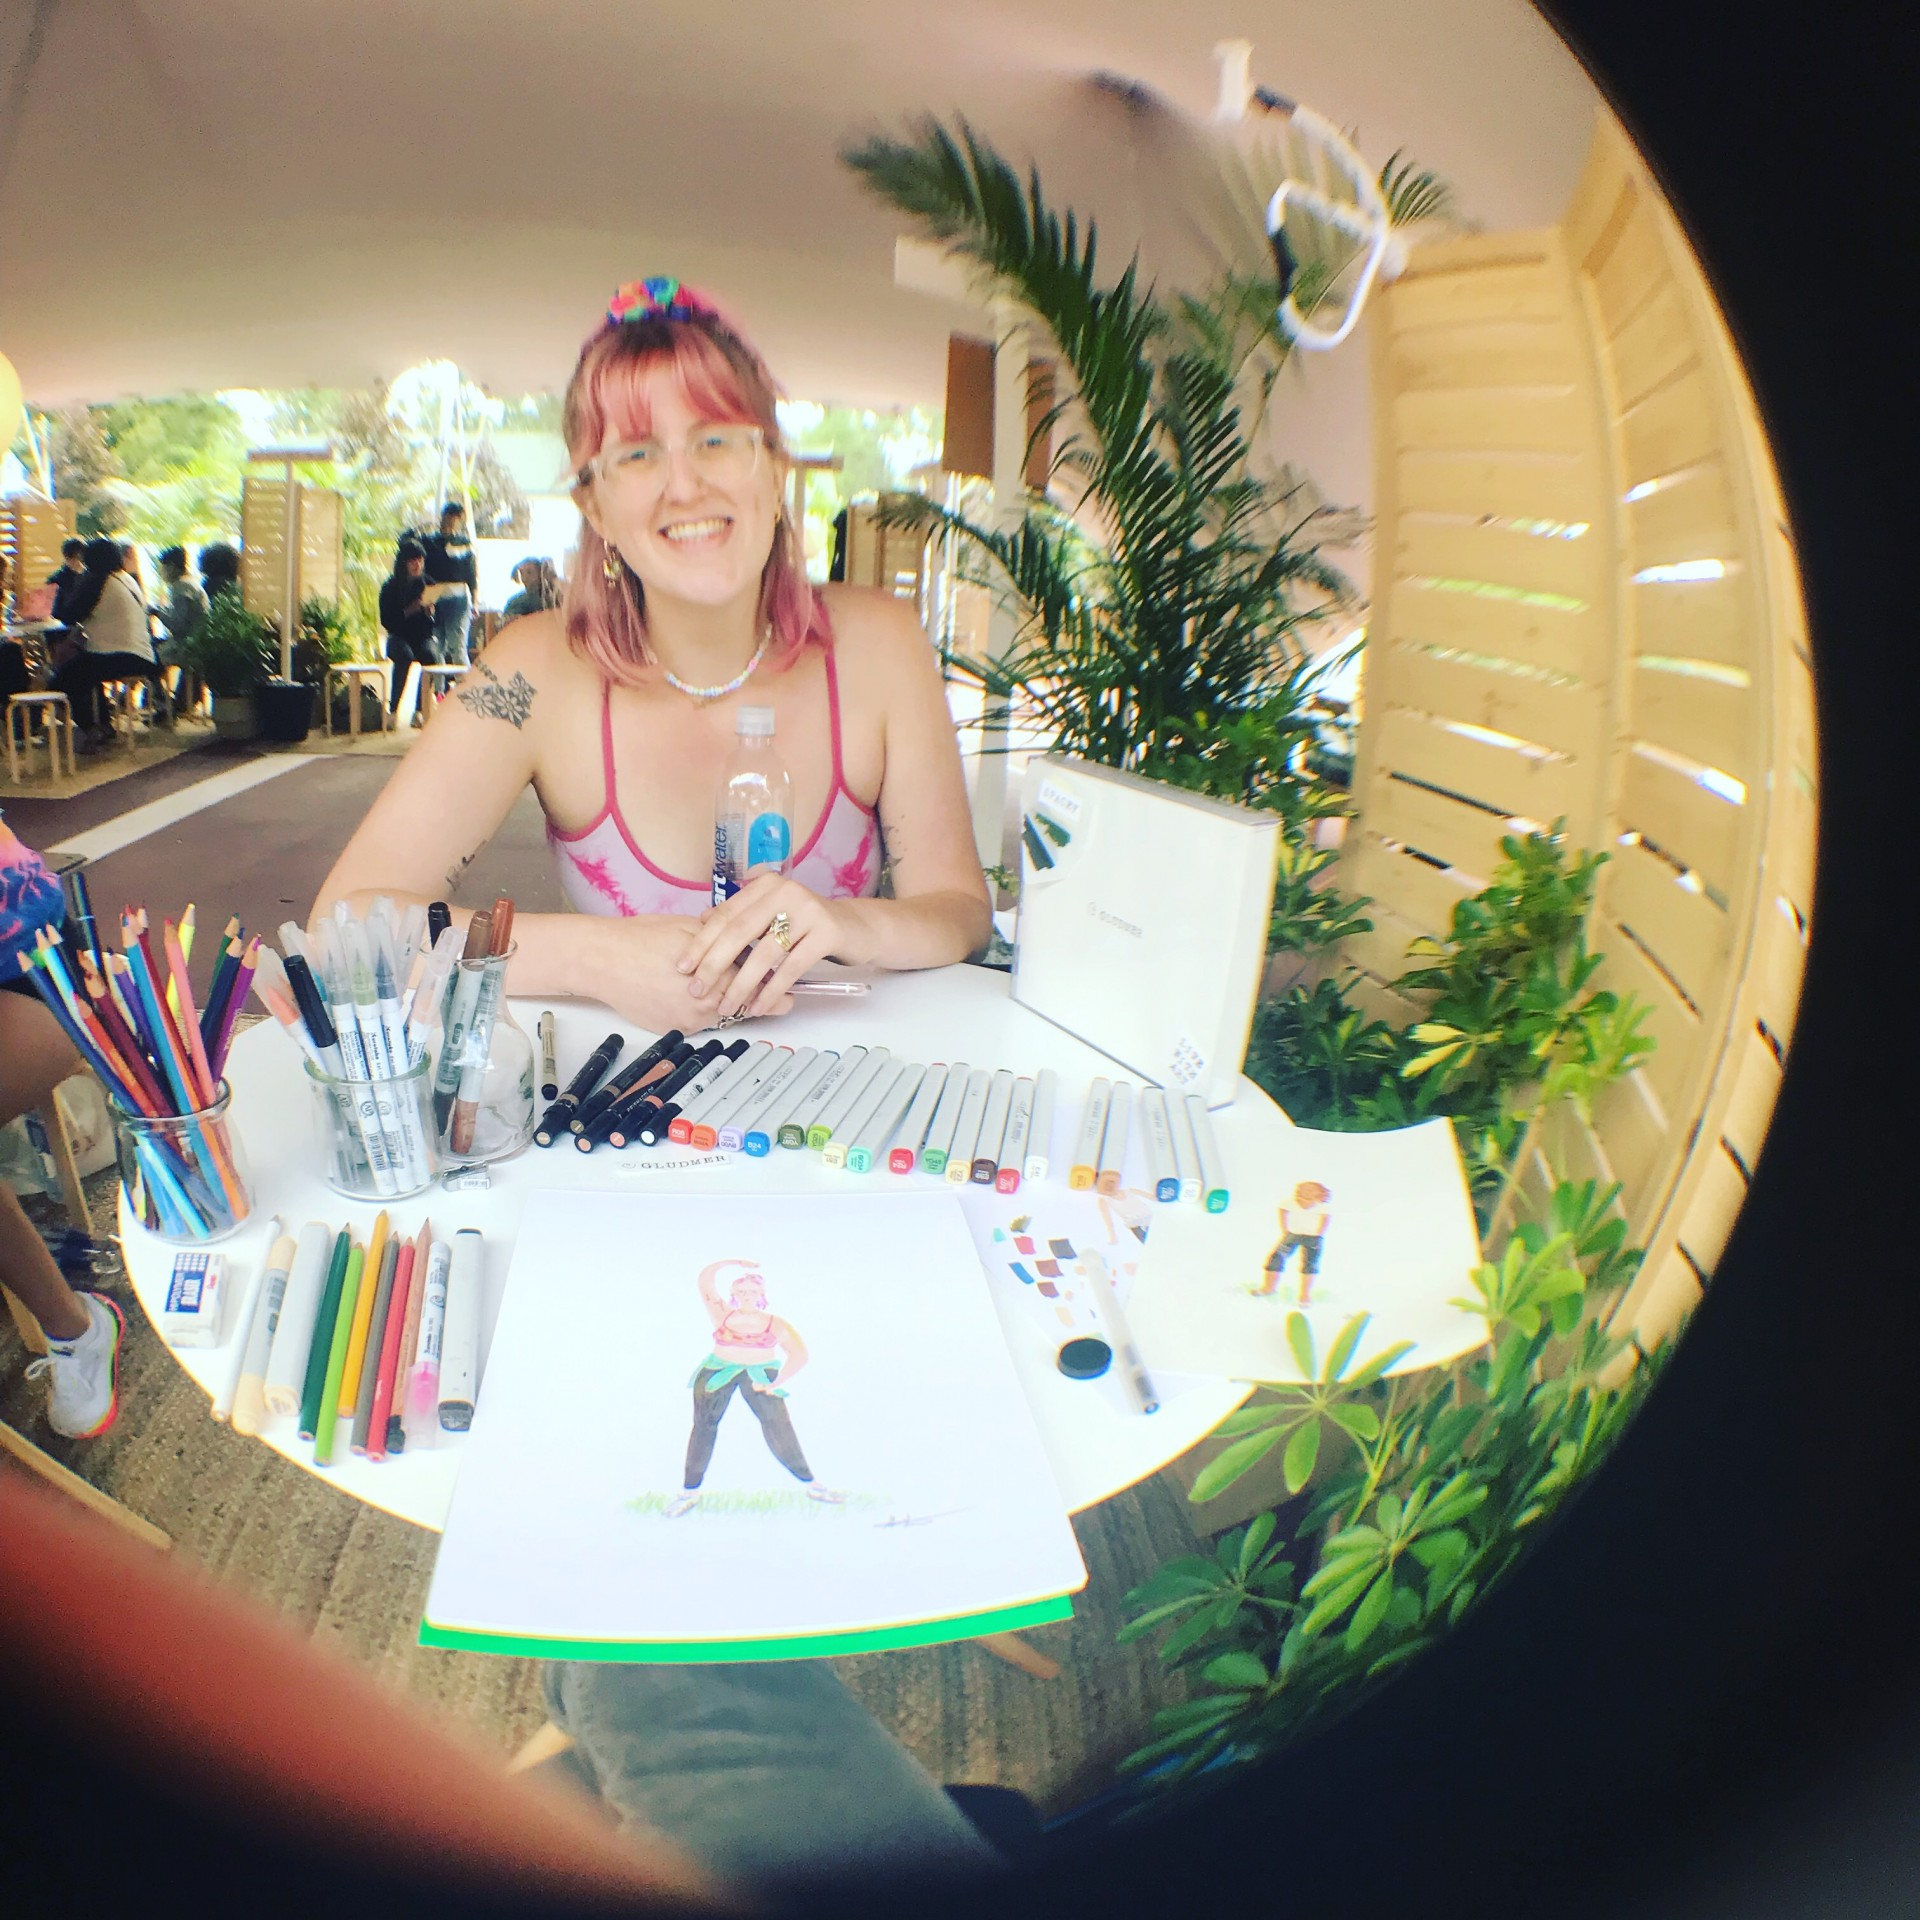 Fisheye angle photograph of portrait drawing station with markers, paper and model